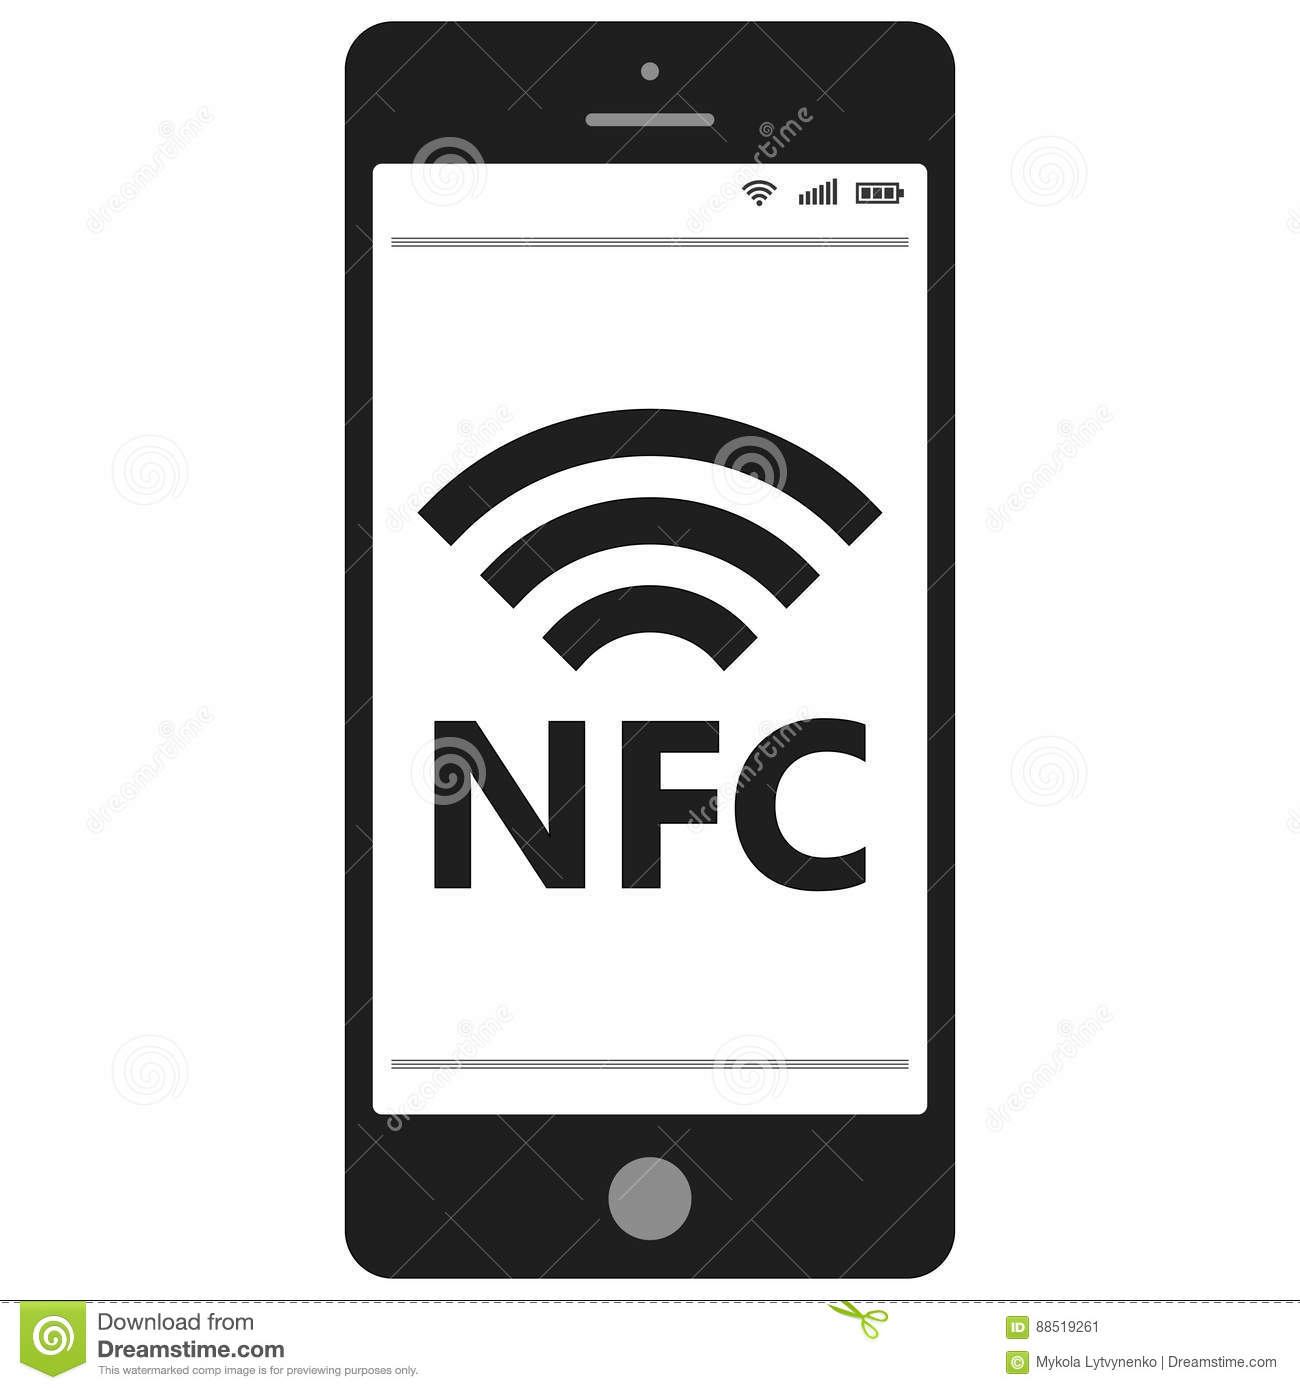 NFC in the phone: what is it 39